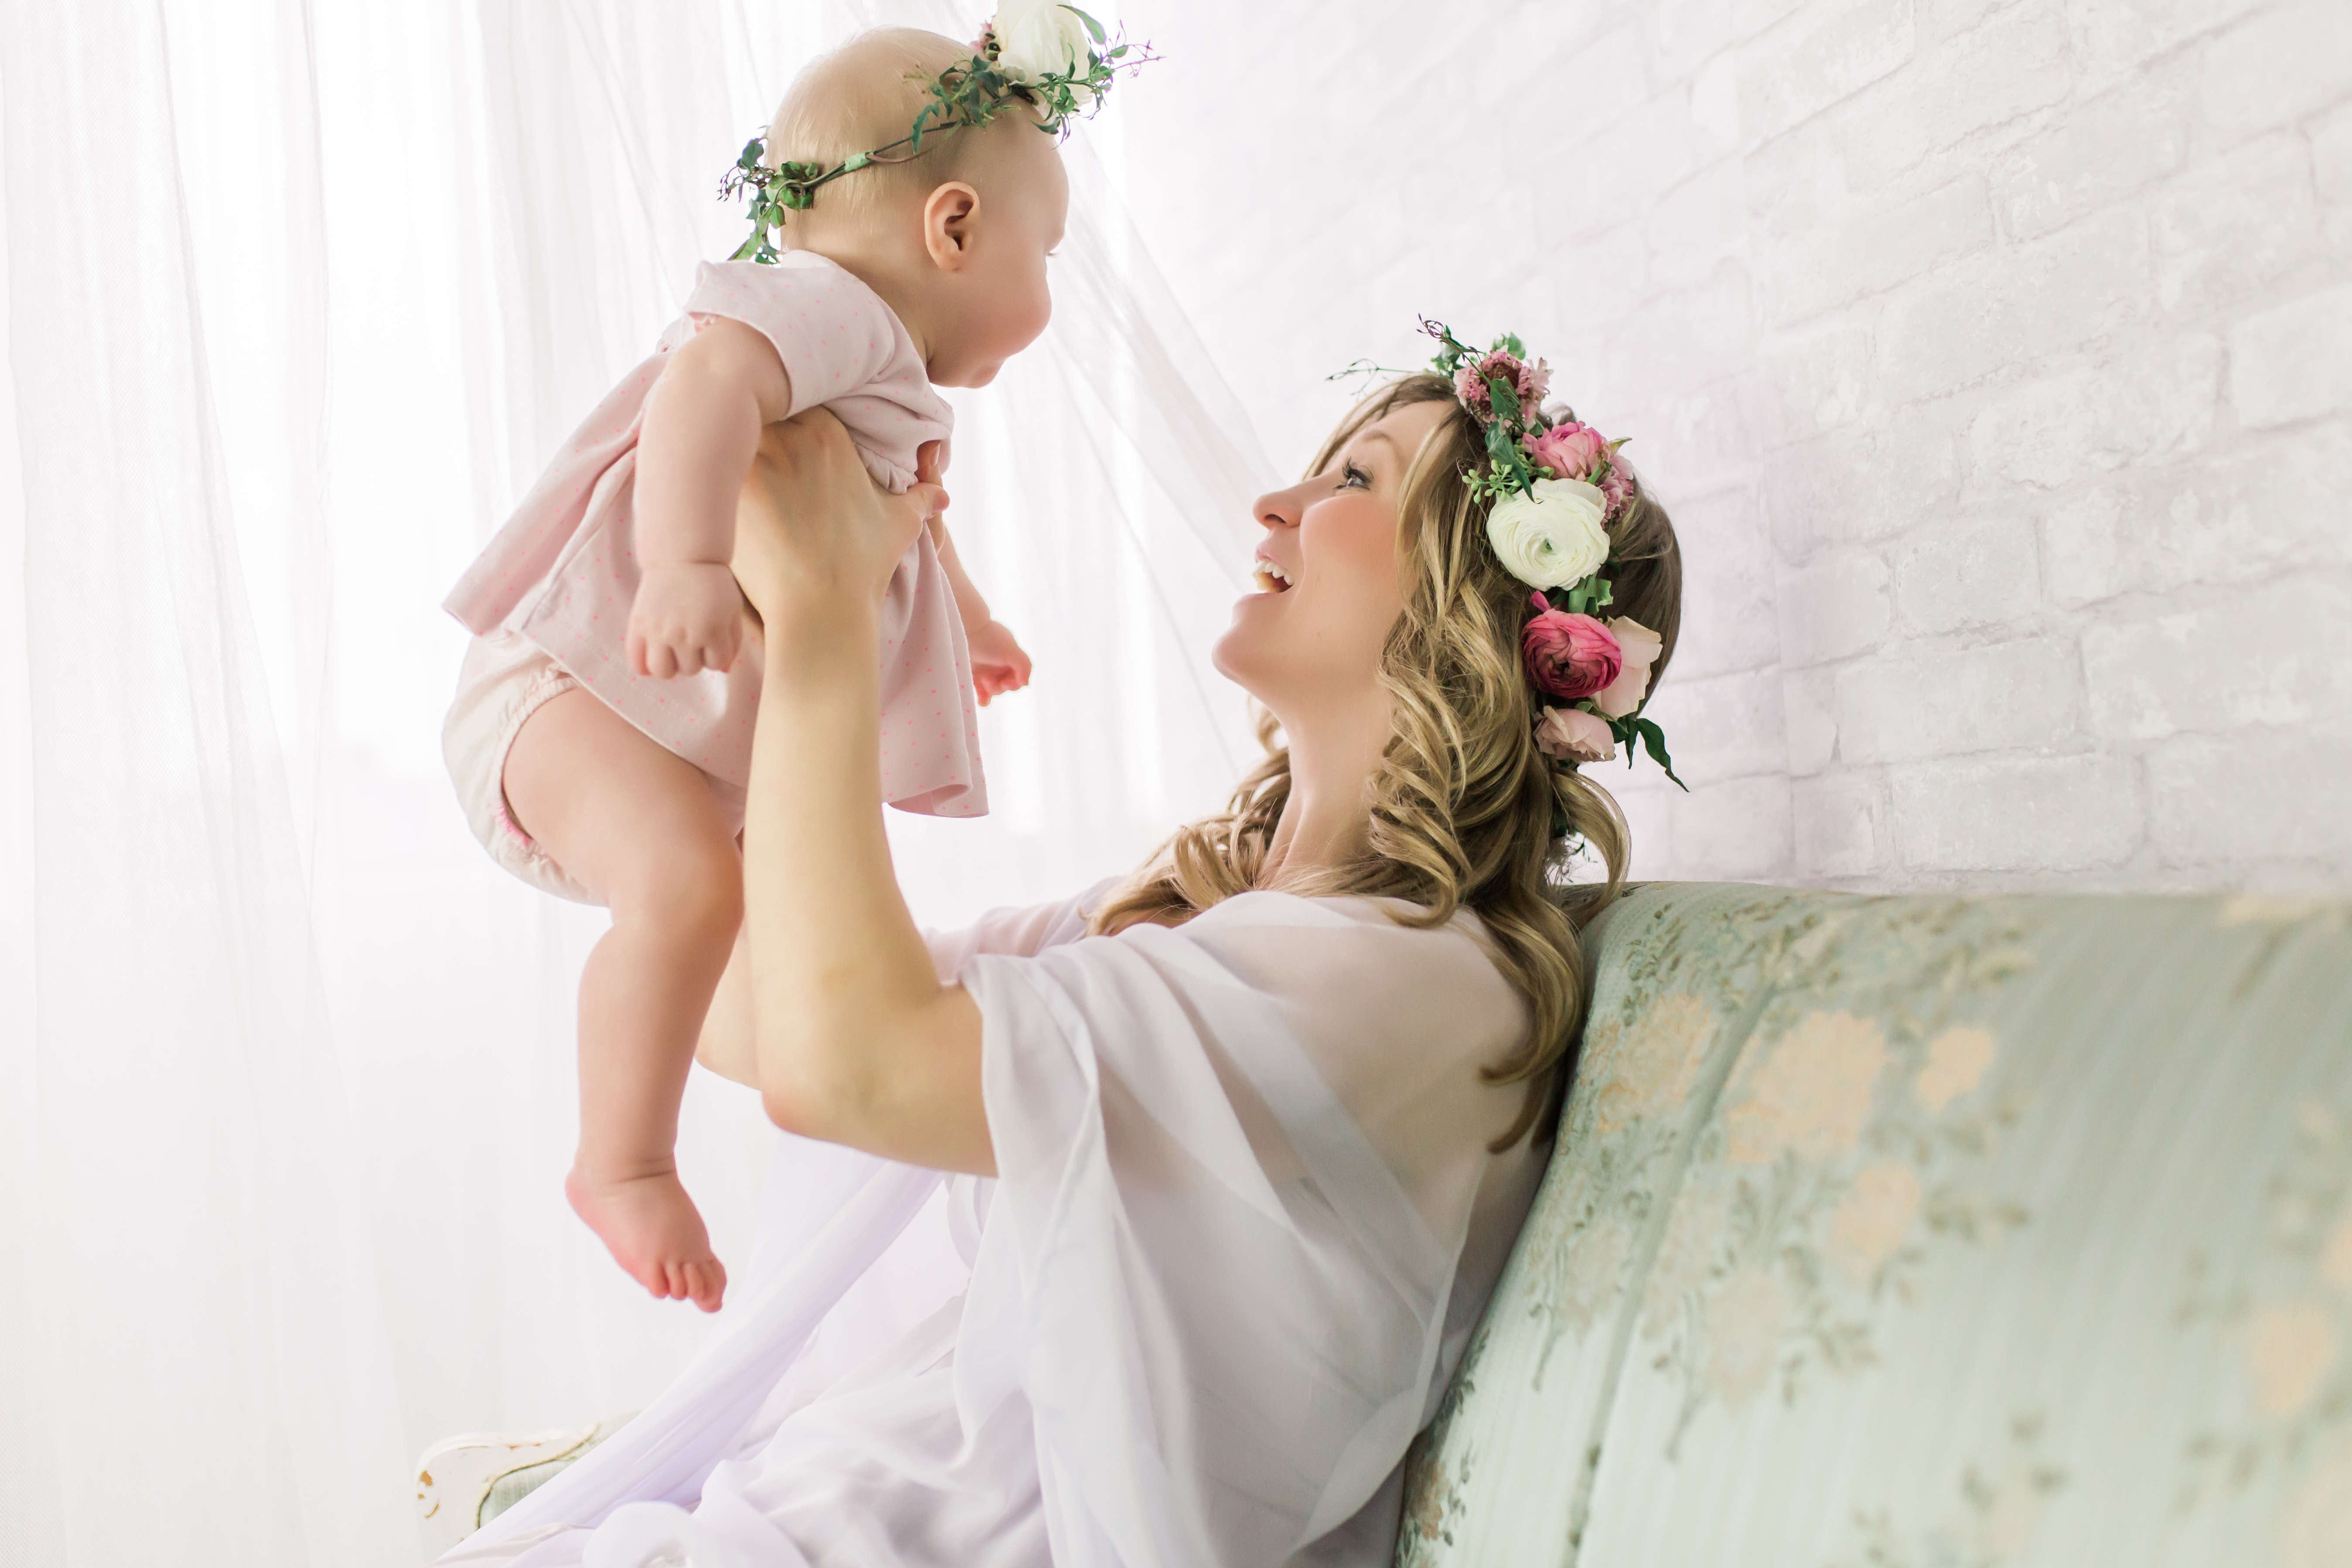 beautiful mother and baby floral crown photoshoot